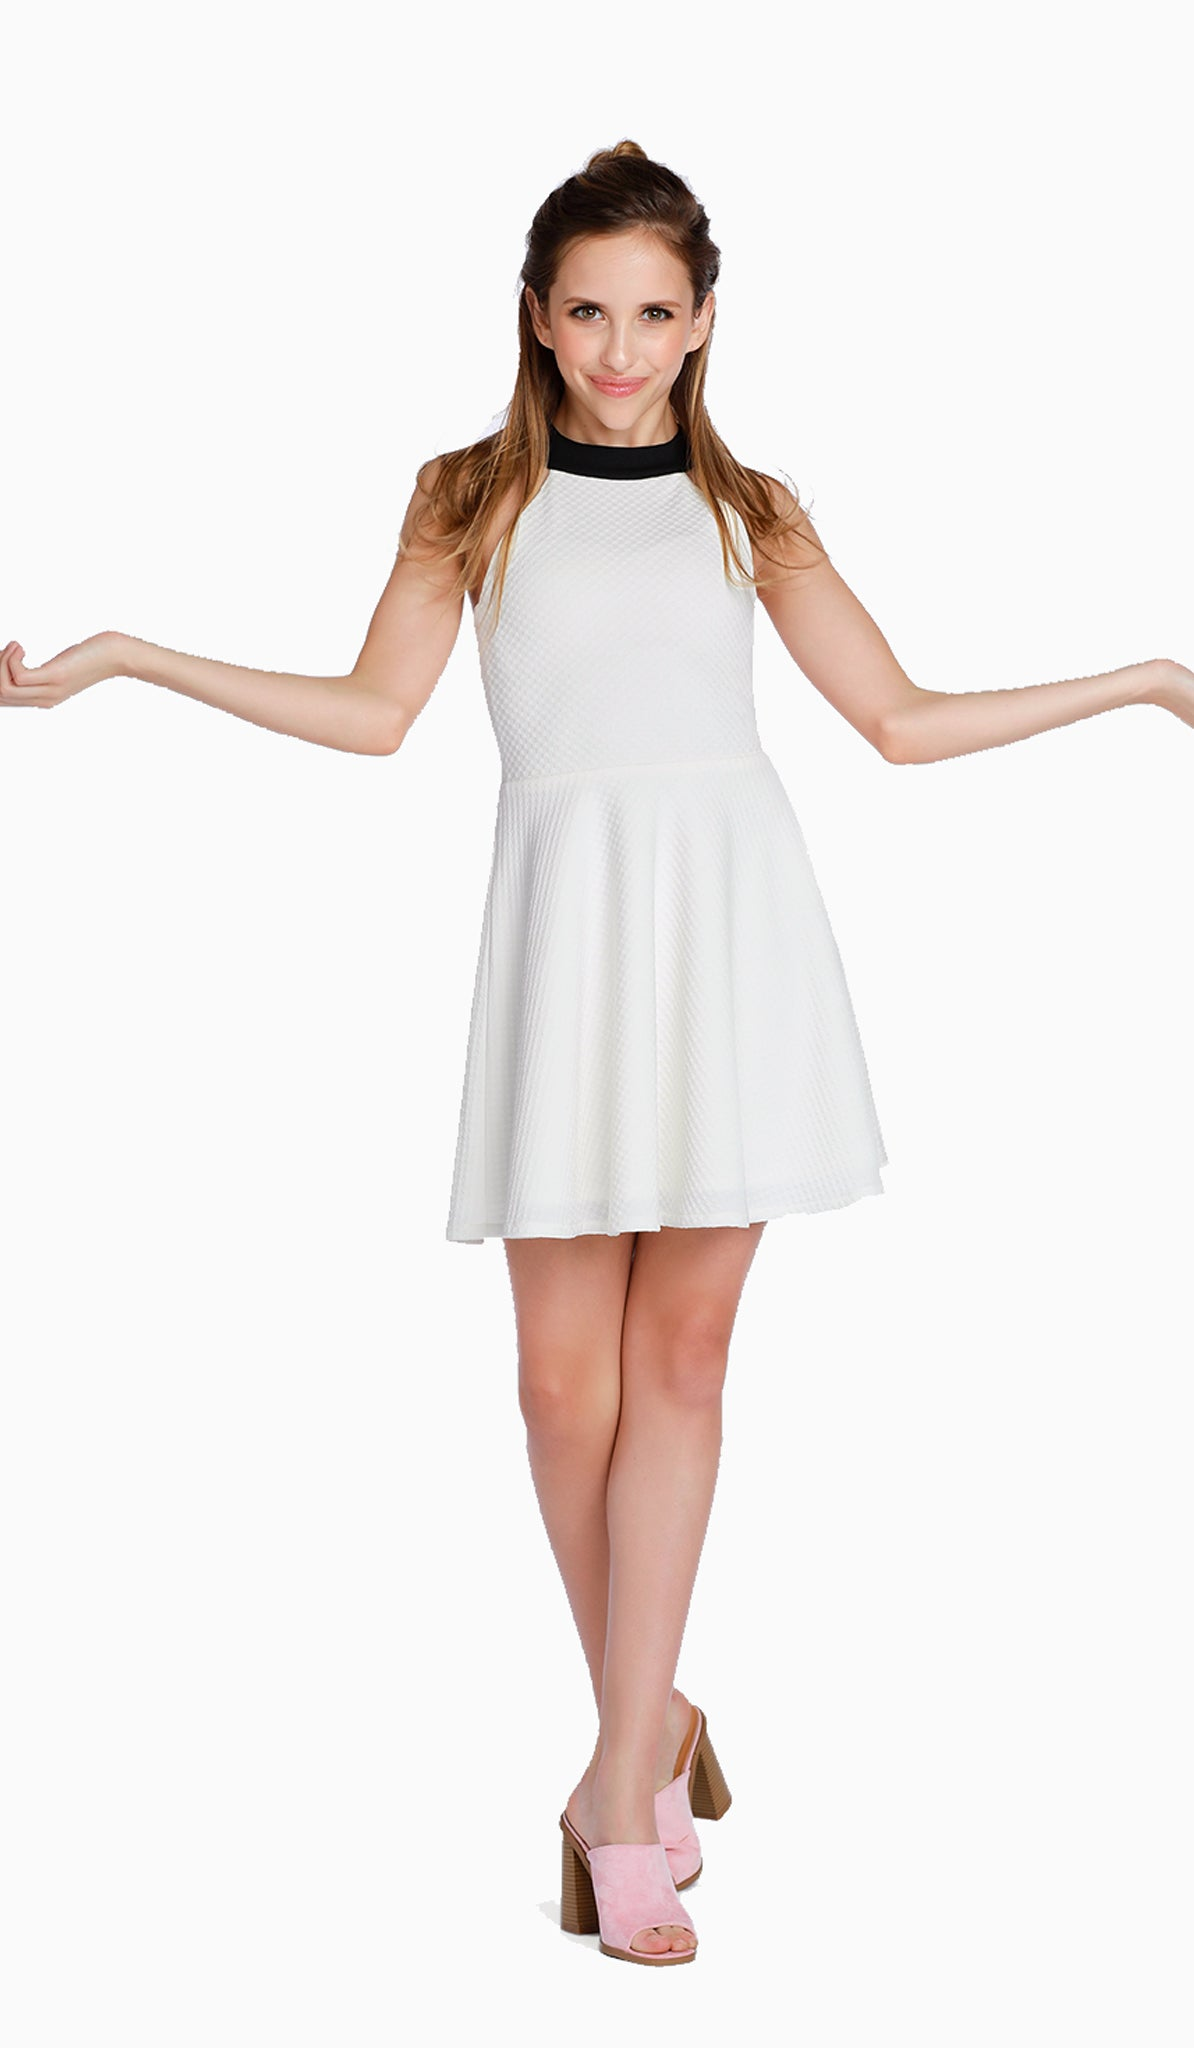 THE HARPER DRESS - Sallymiller.com - [variant title] - | Event & Party Dresses for Tween Girls & Juniors | Weddings Dresses, Bat Mitzvah Dresses, Sweet Sixteen Dresses, Graduation Dresses, Birthday Party Dresses, Bar Mitzvah Dresses, Cotillion Dresses